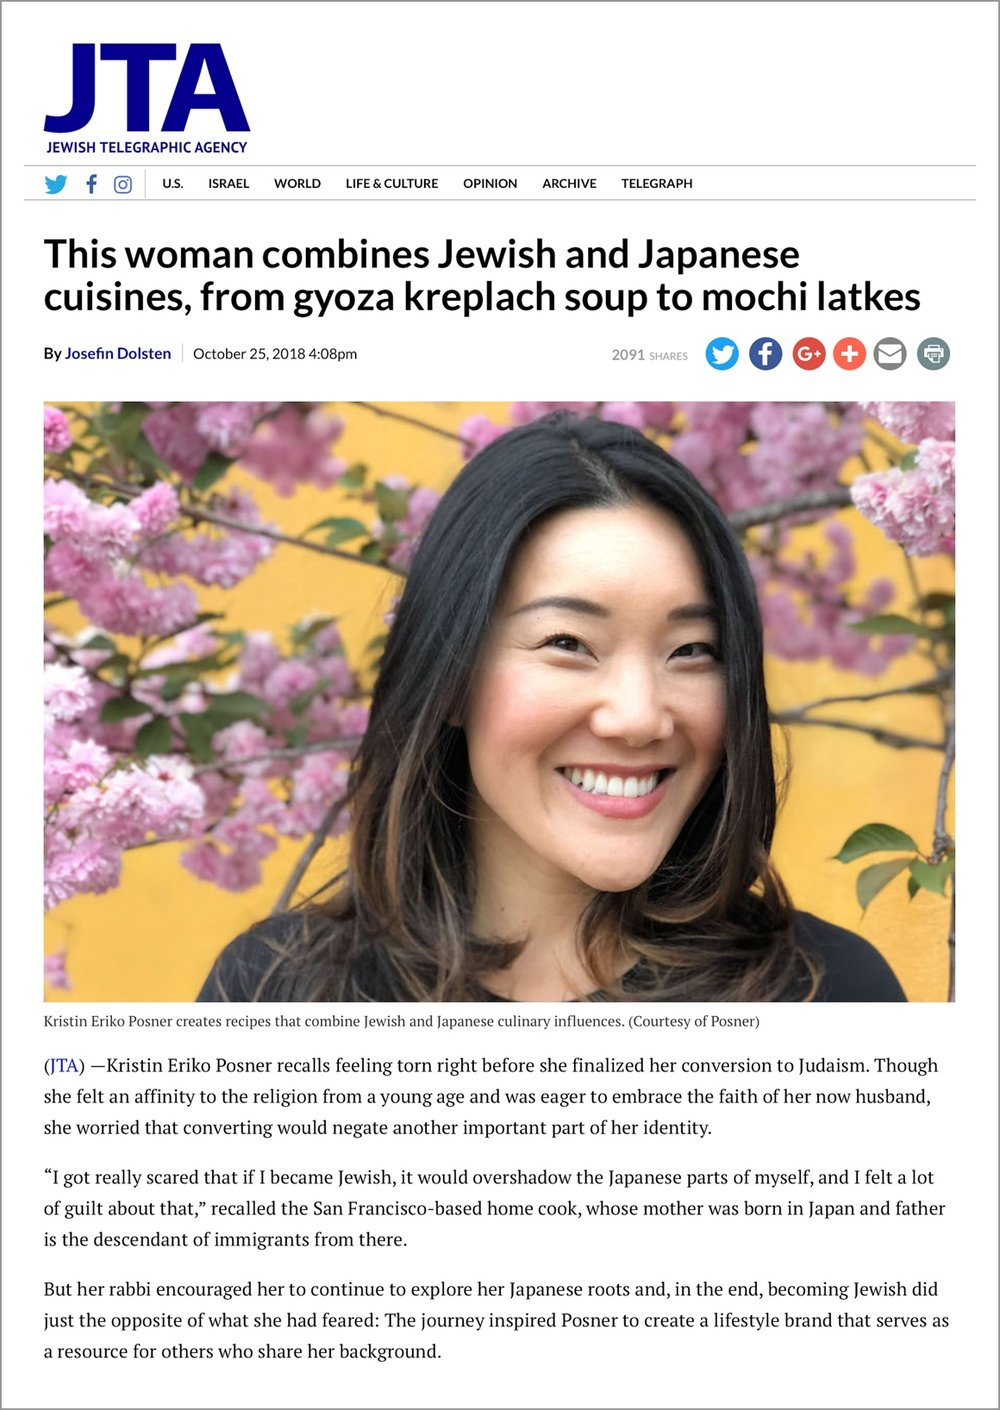 """Kristin Eriko Posner recalls feeling torn right before she finalized her conversion to Judaism. Though she felt an affinity to the religion from a young age and was eager to embrace the faith of her now husband, she worried that converting would negate another important part of her identity..."